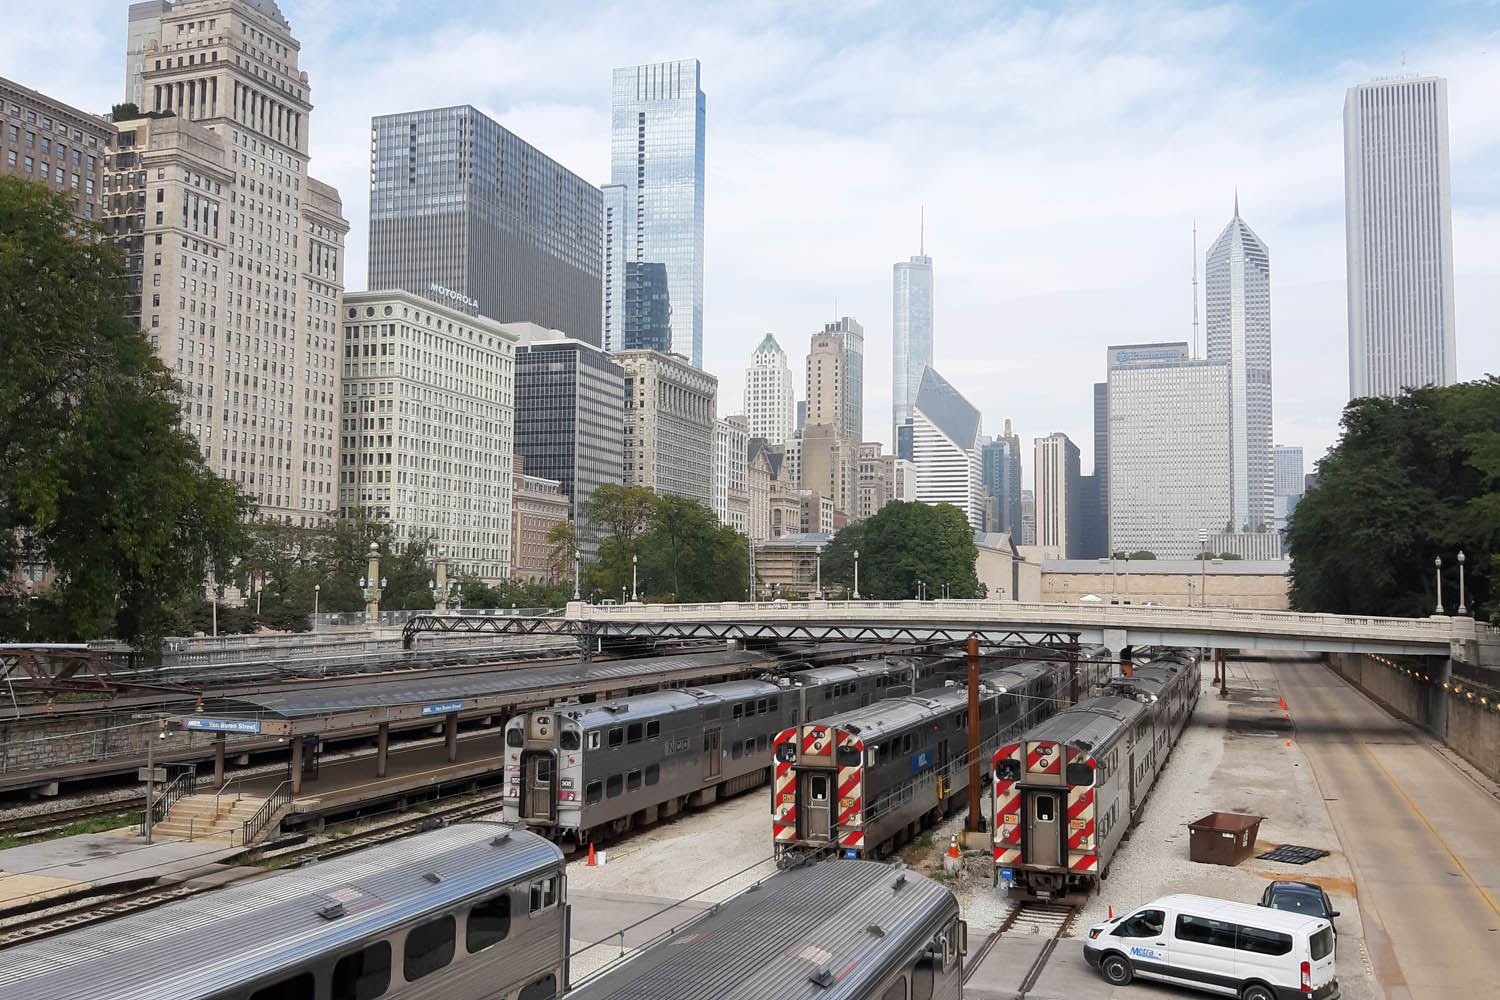 Chicago Elevated (Hochbahn)